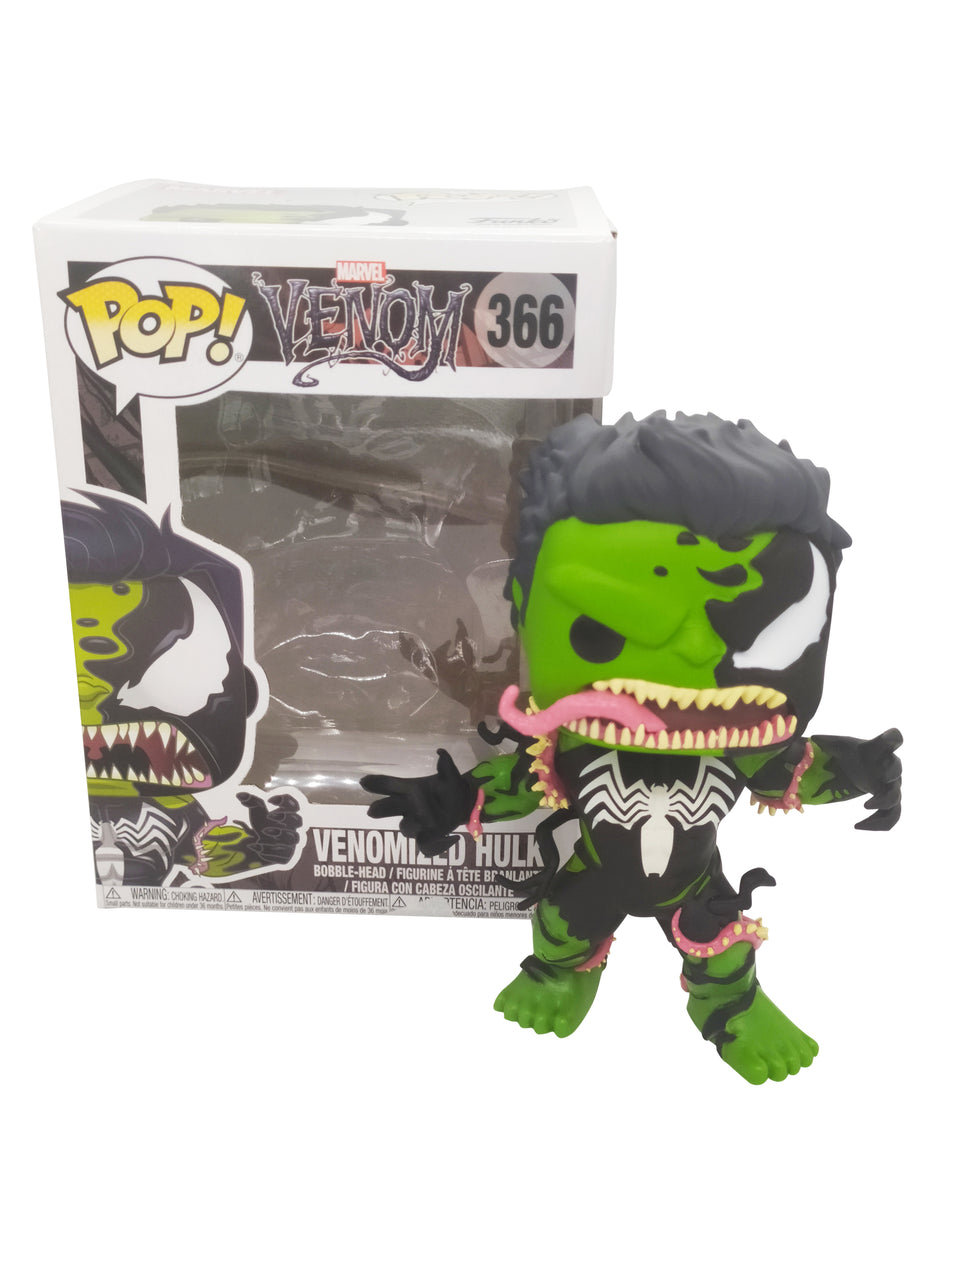 funko pop venomized hulk (366)